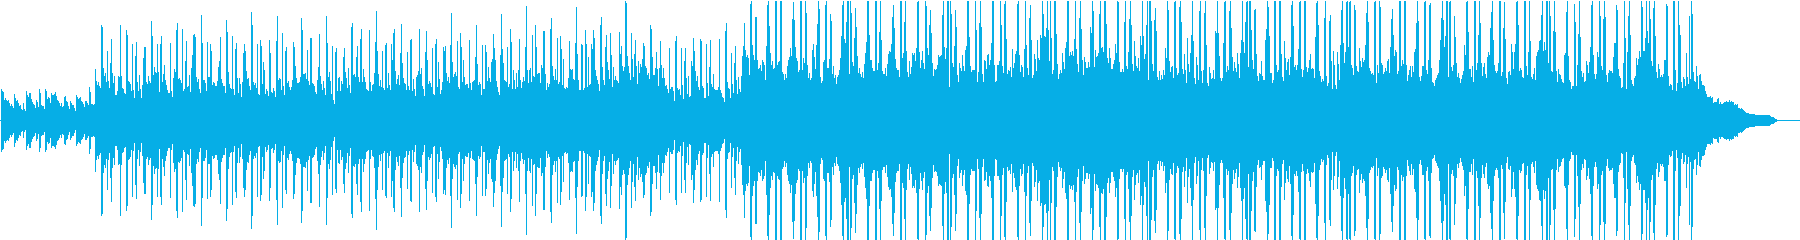 Japanese Calm Grand (Main) Koto Shakuhachi - Promotional 10's reproduced waveform